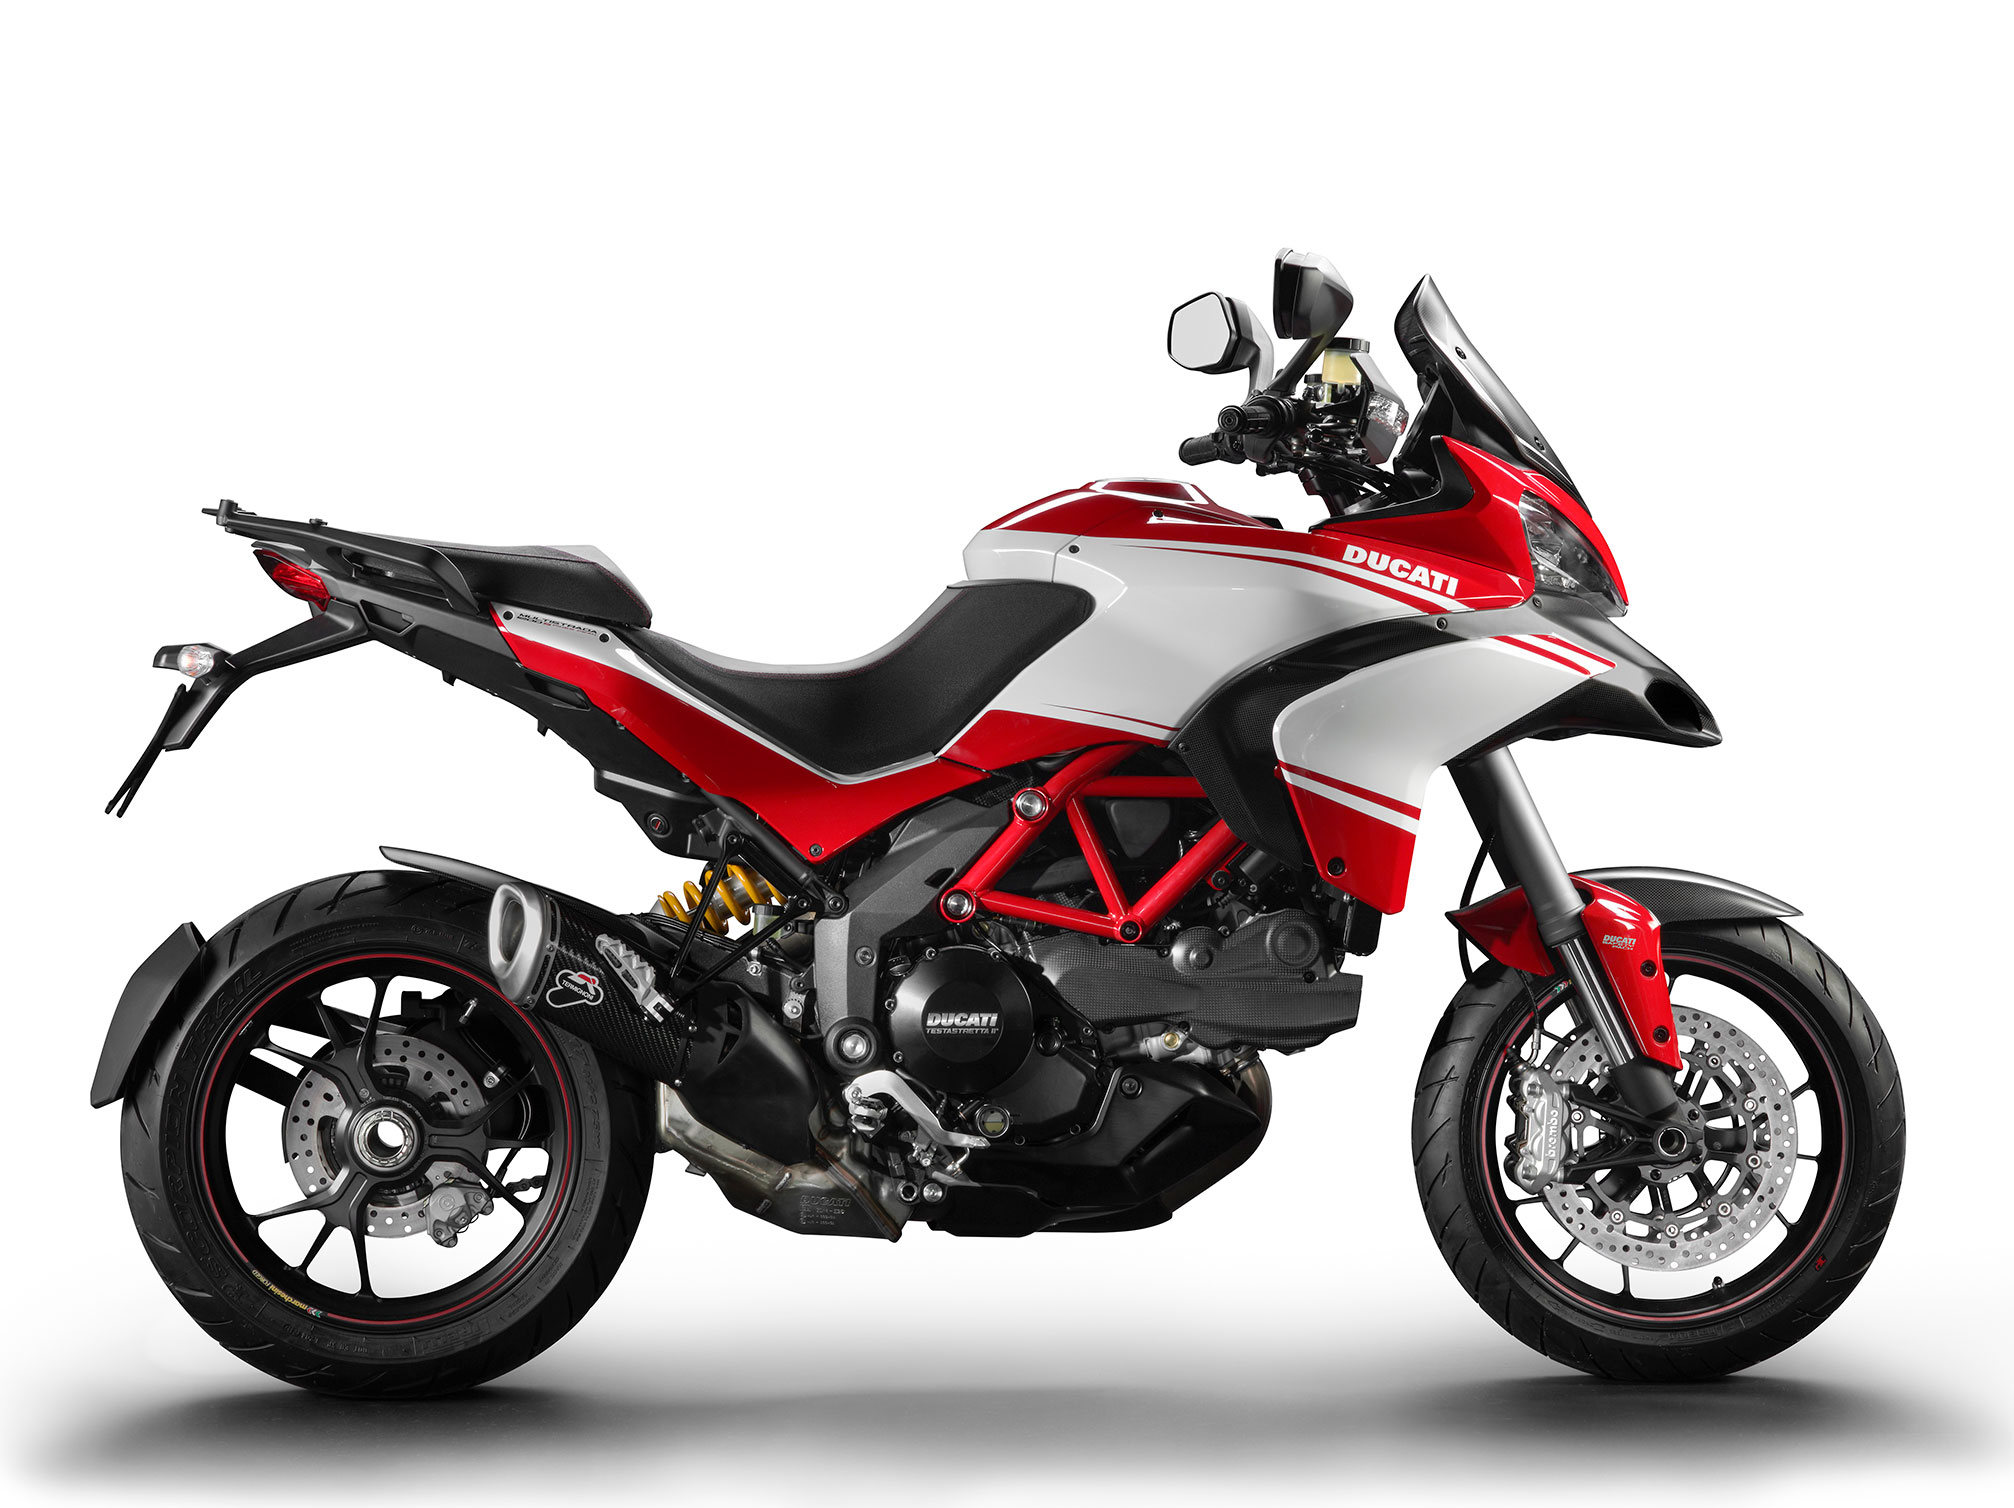 Ducati Multistrada 1200 S Pikes Peak Edition 2013 images #80018